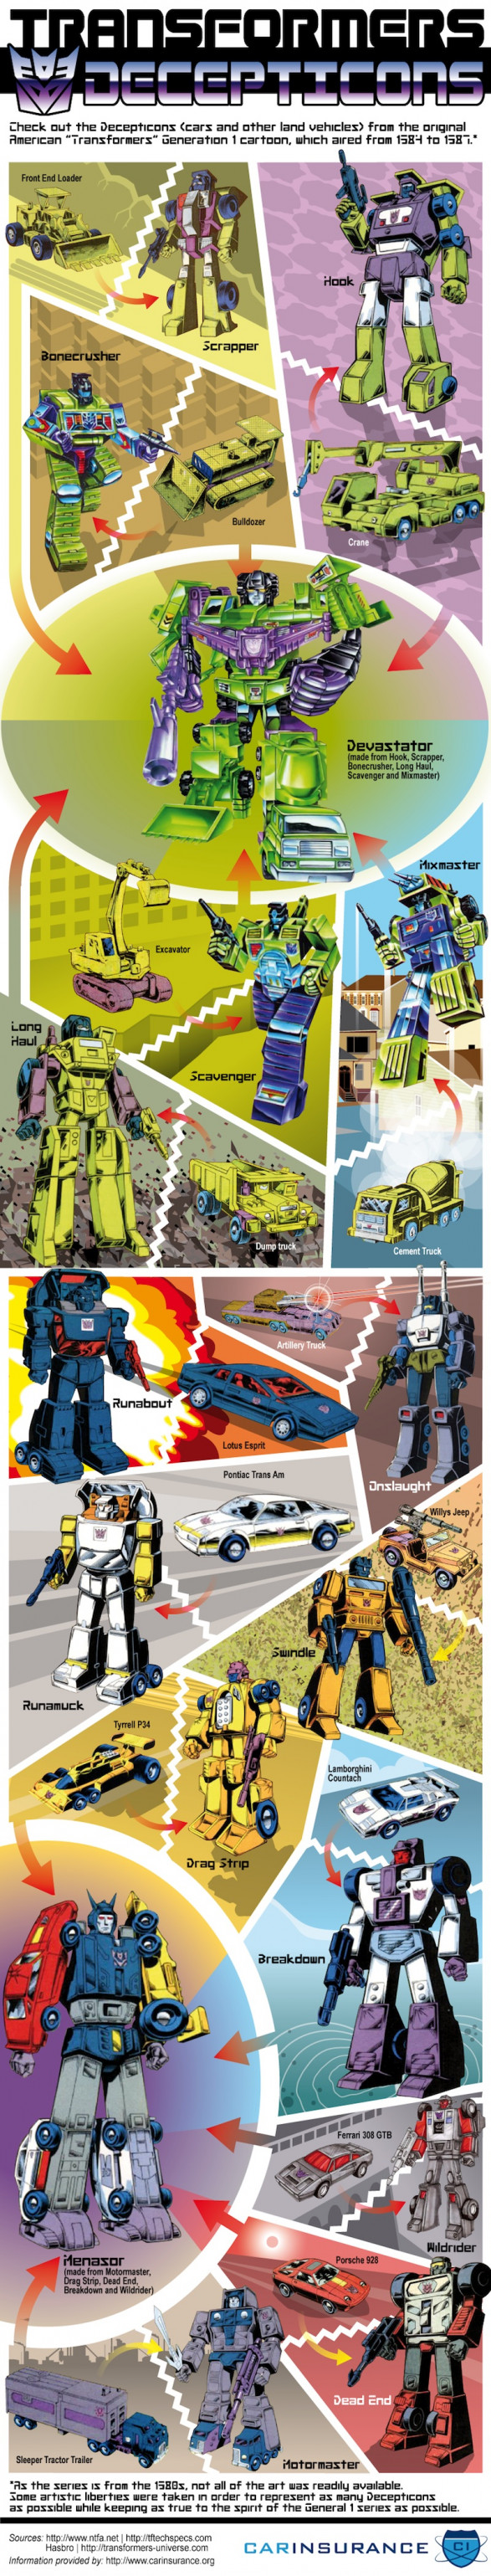 Transformers: The Decepticons Vehicles